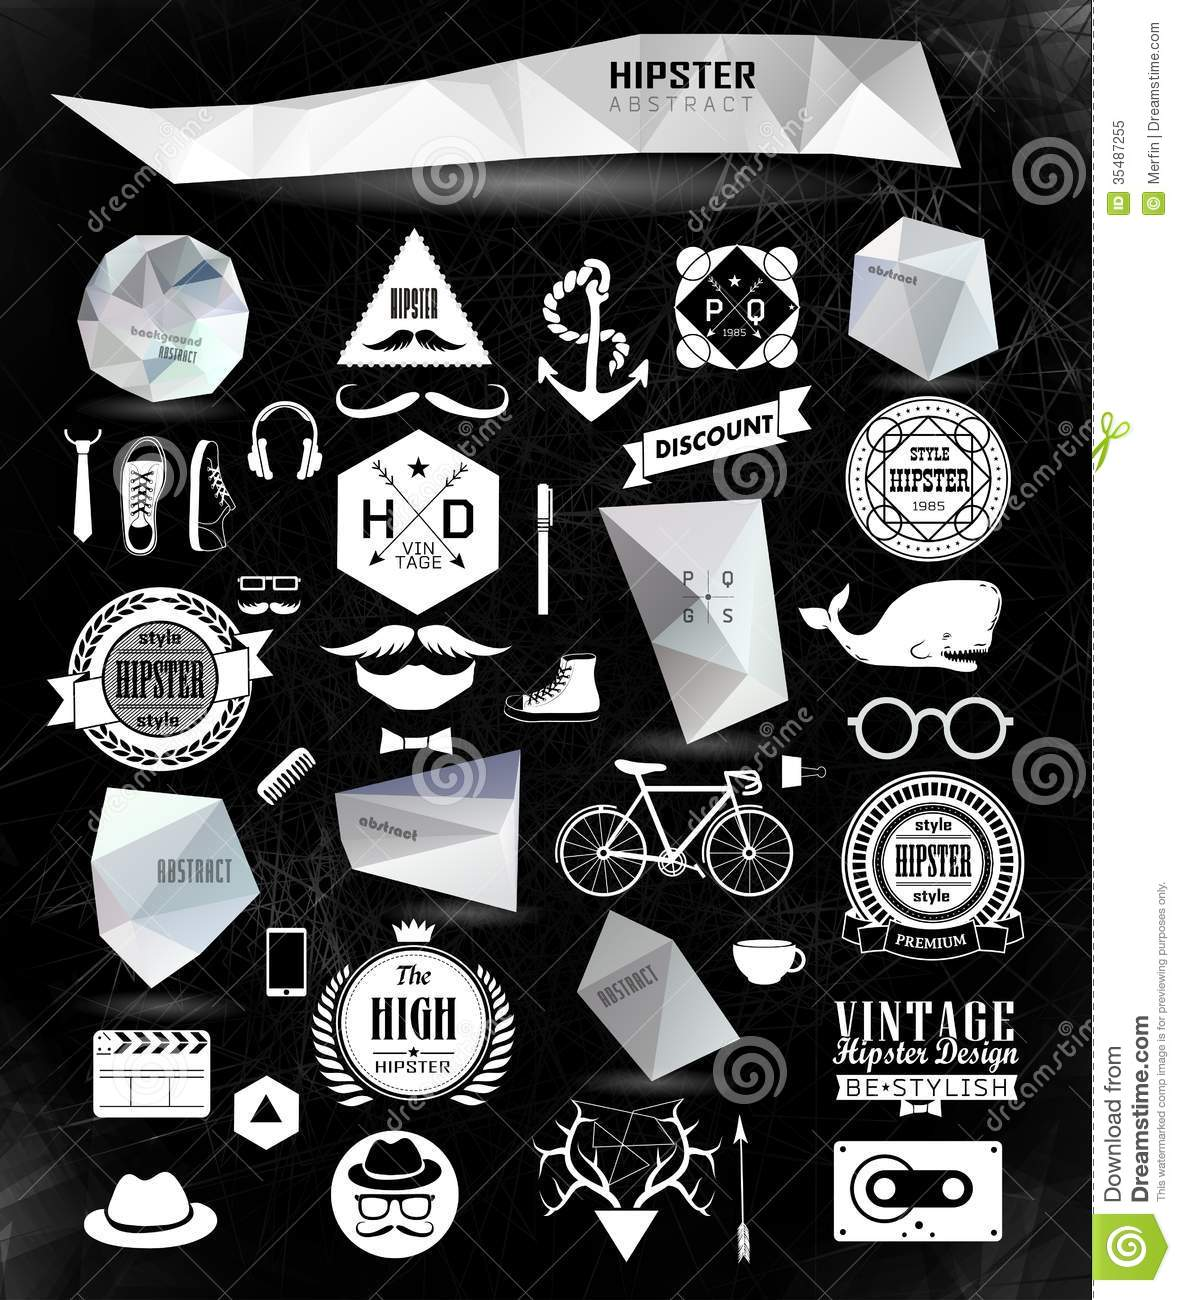 Hipster Style Elements And Icons Royalty Free Stock Photo ...